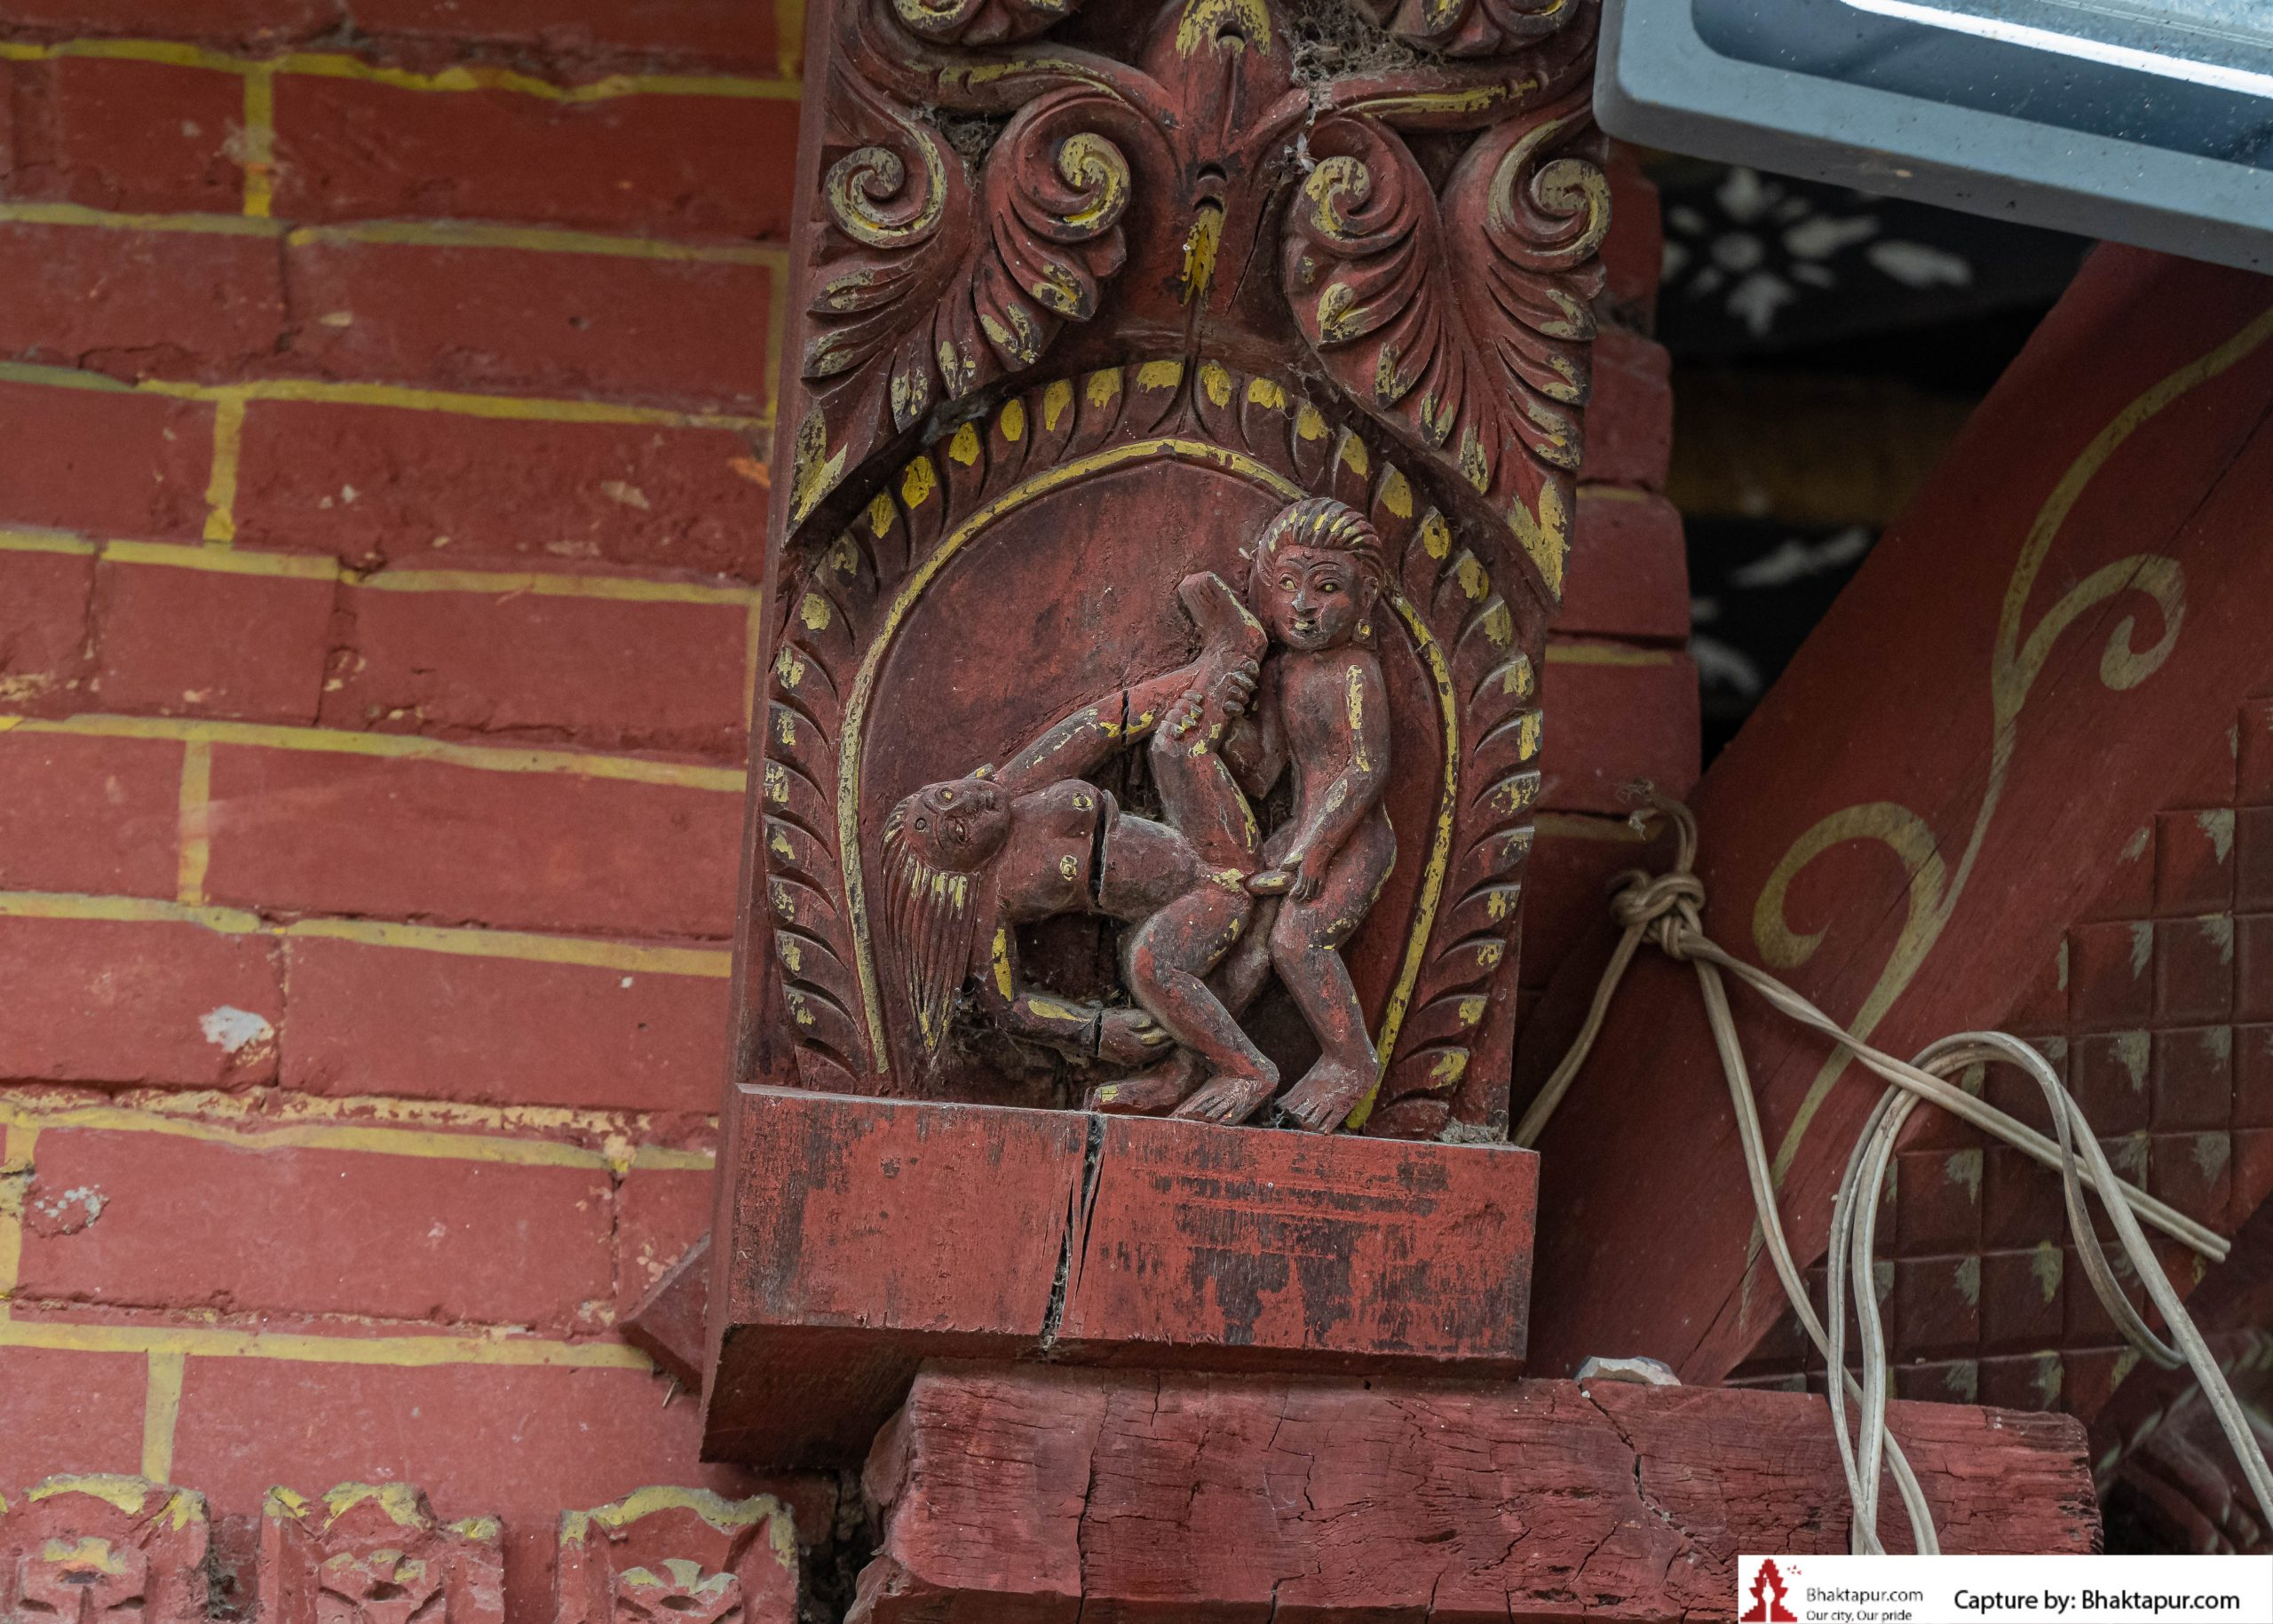 https://www.bhaktapur.com/wp-content/uploads/2021/08/erotic-carving-60-of-137-scaled.jpg